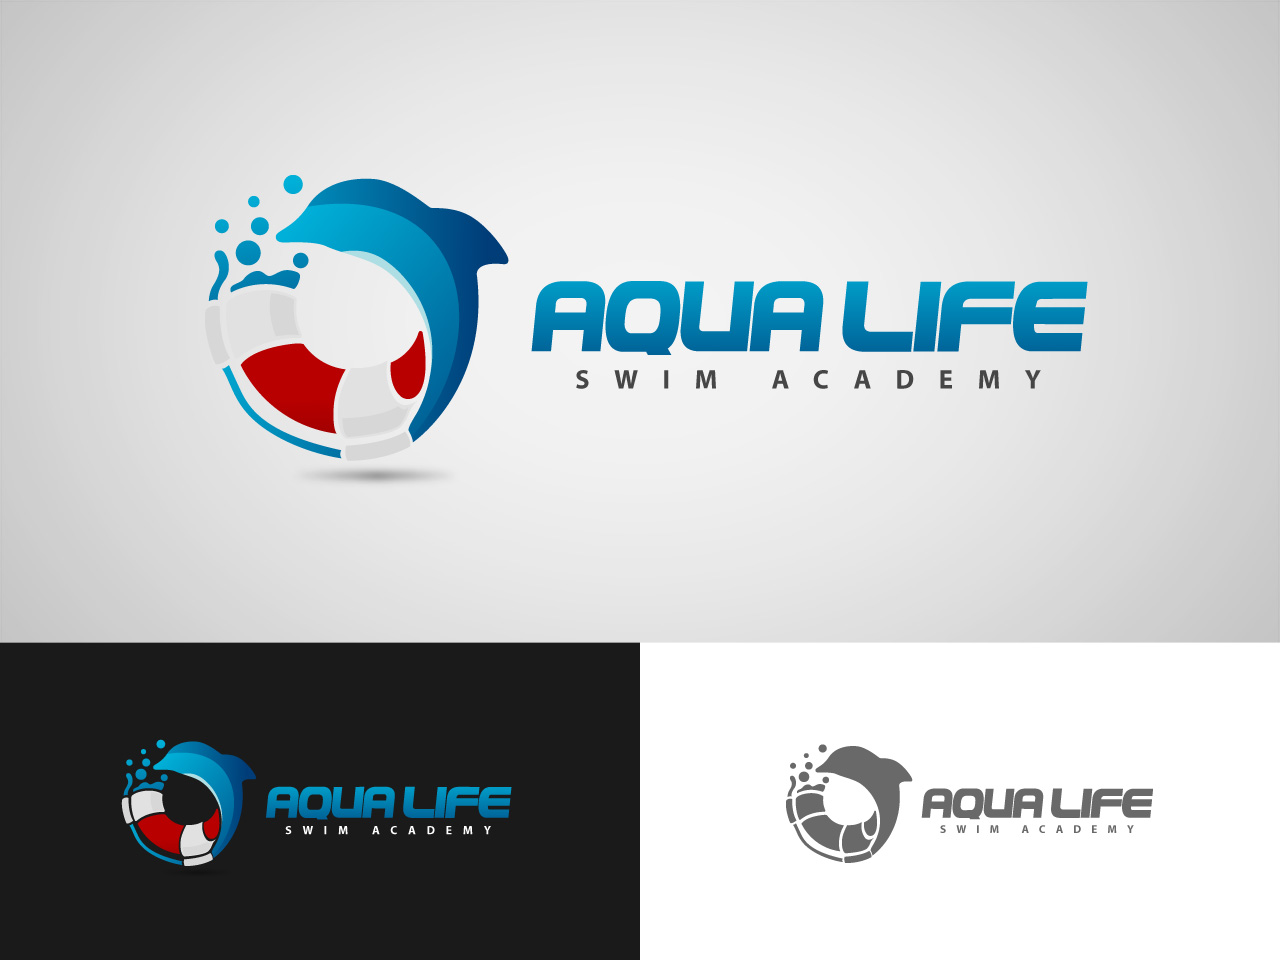 Logo Design by jpbituin - Entry No. 120 in the Logo Design Contest Artistic Logo Design Wanted for The Aqua Life Swim Academy.